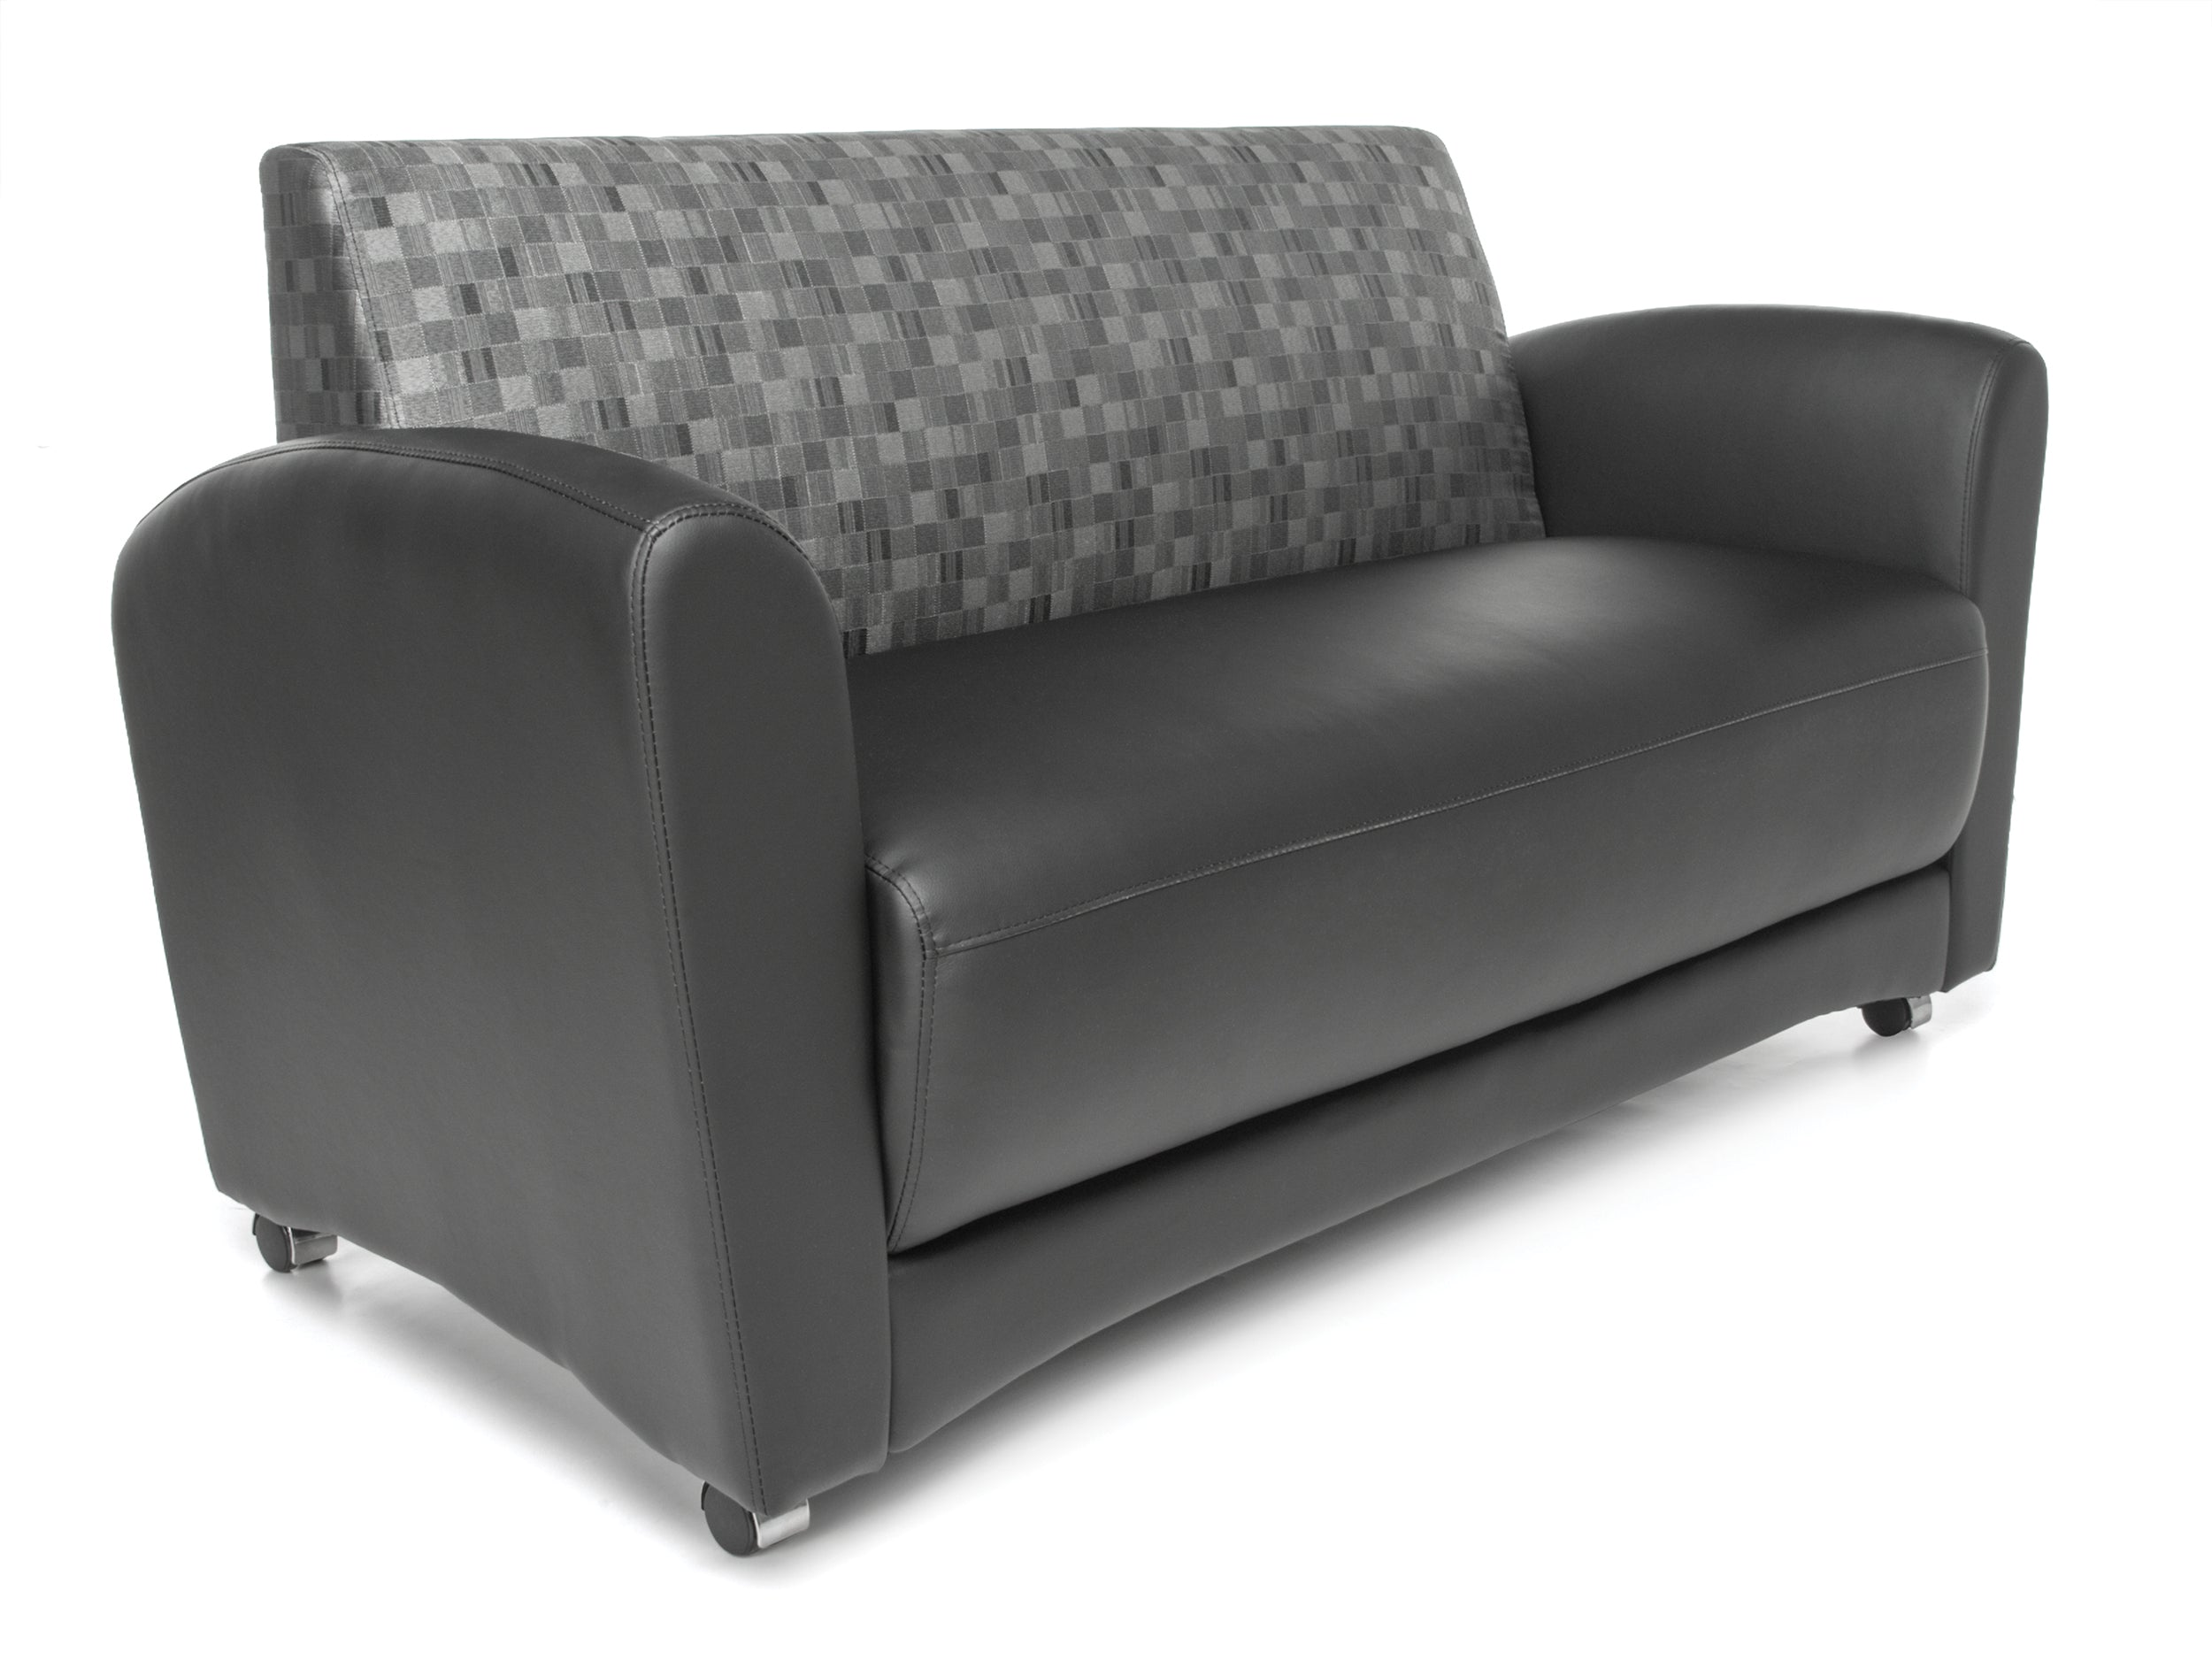 Ofminc Model 822-NT InterPlay Series Sofa No Tablet